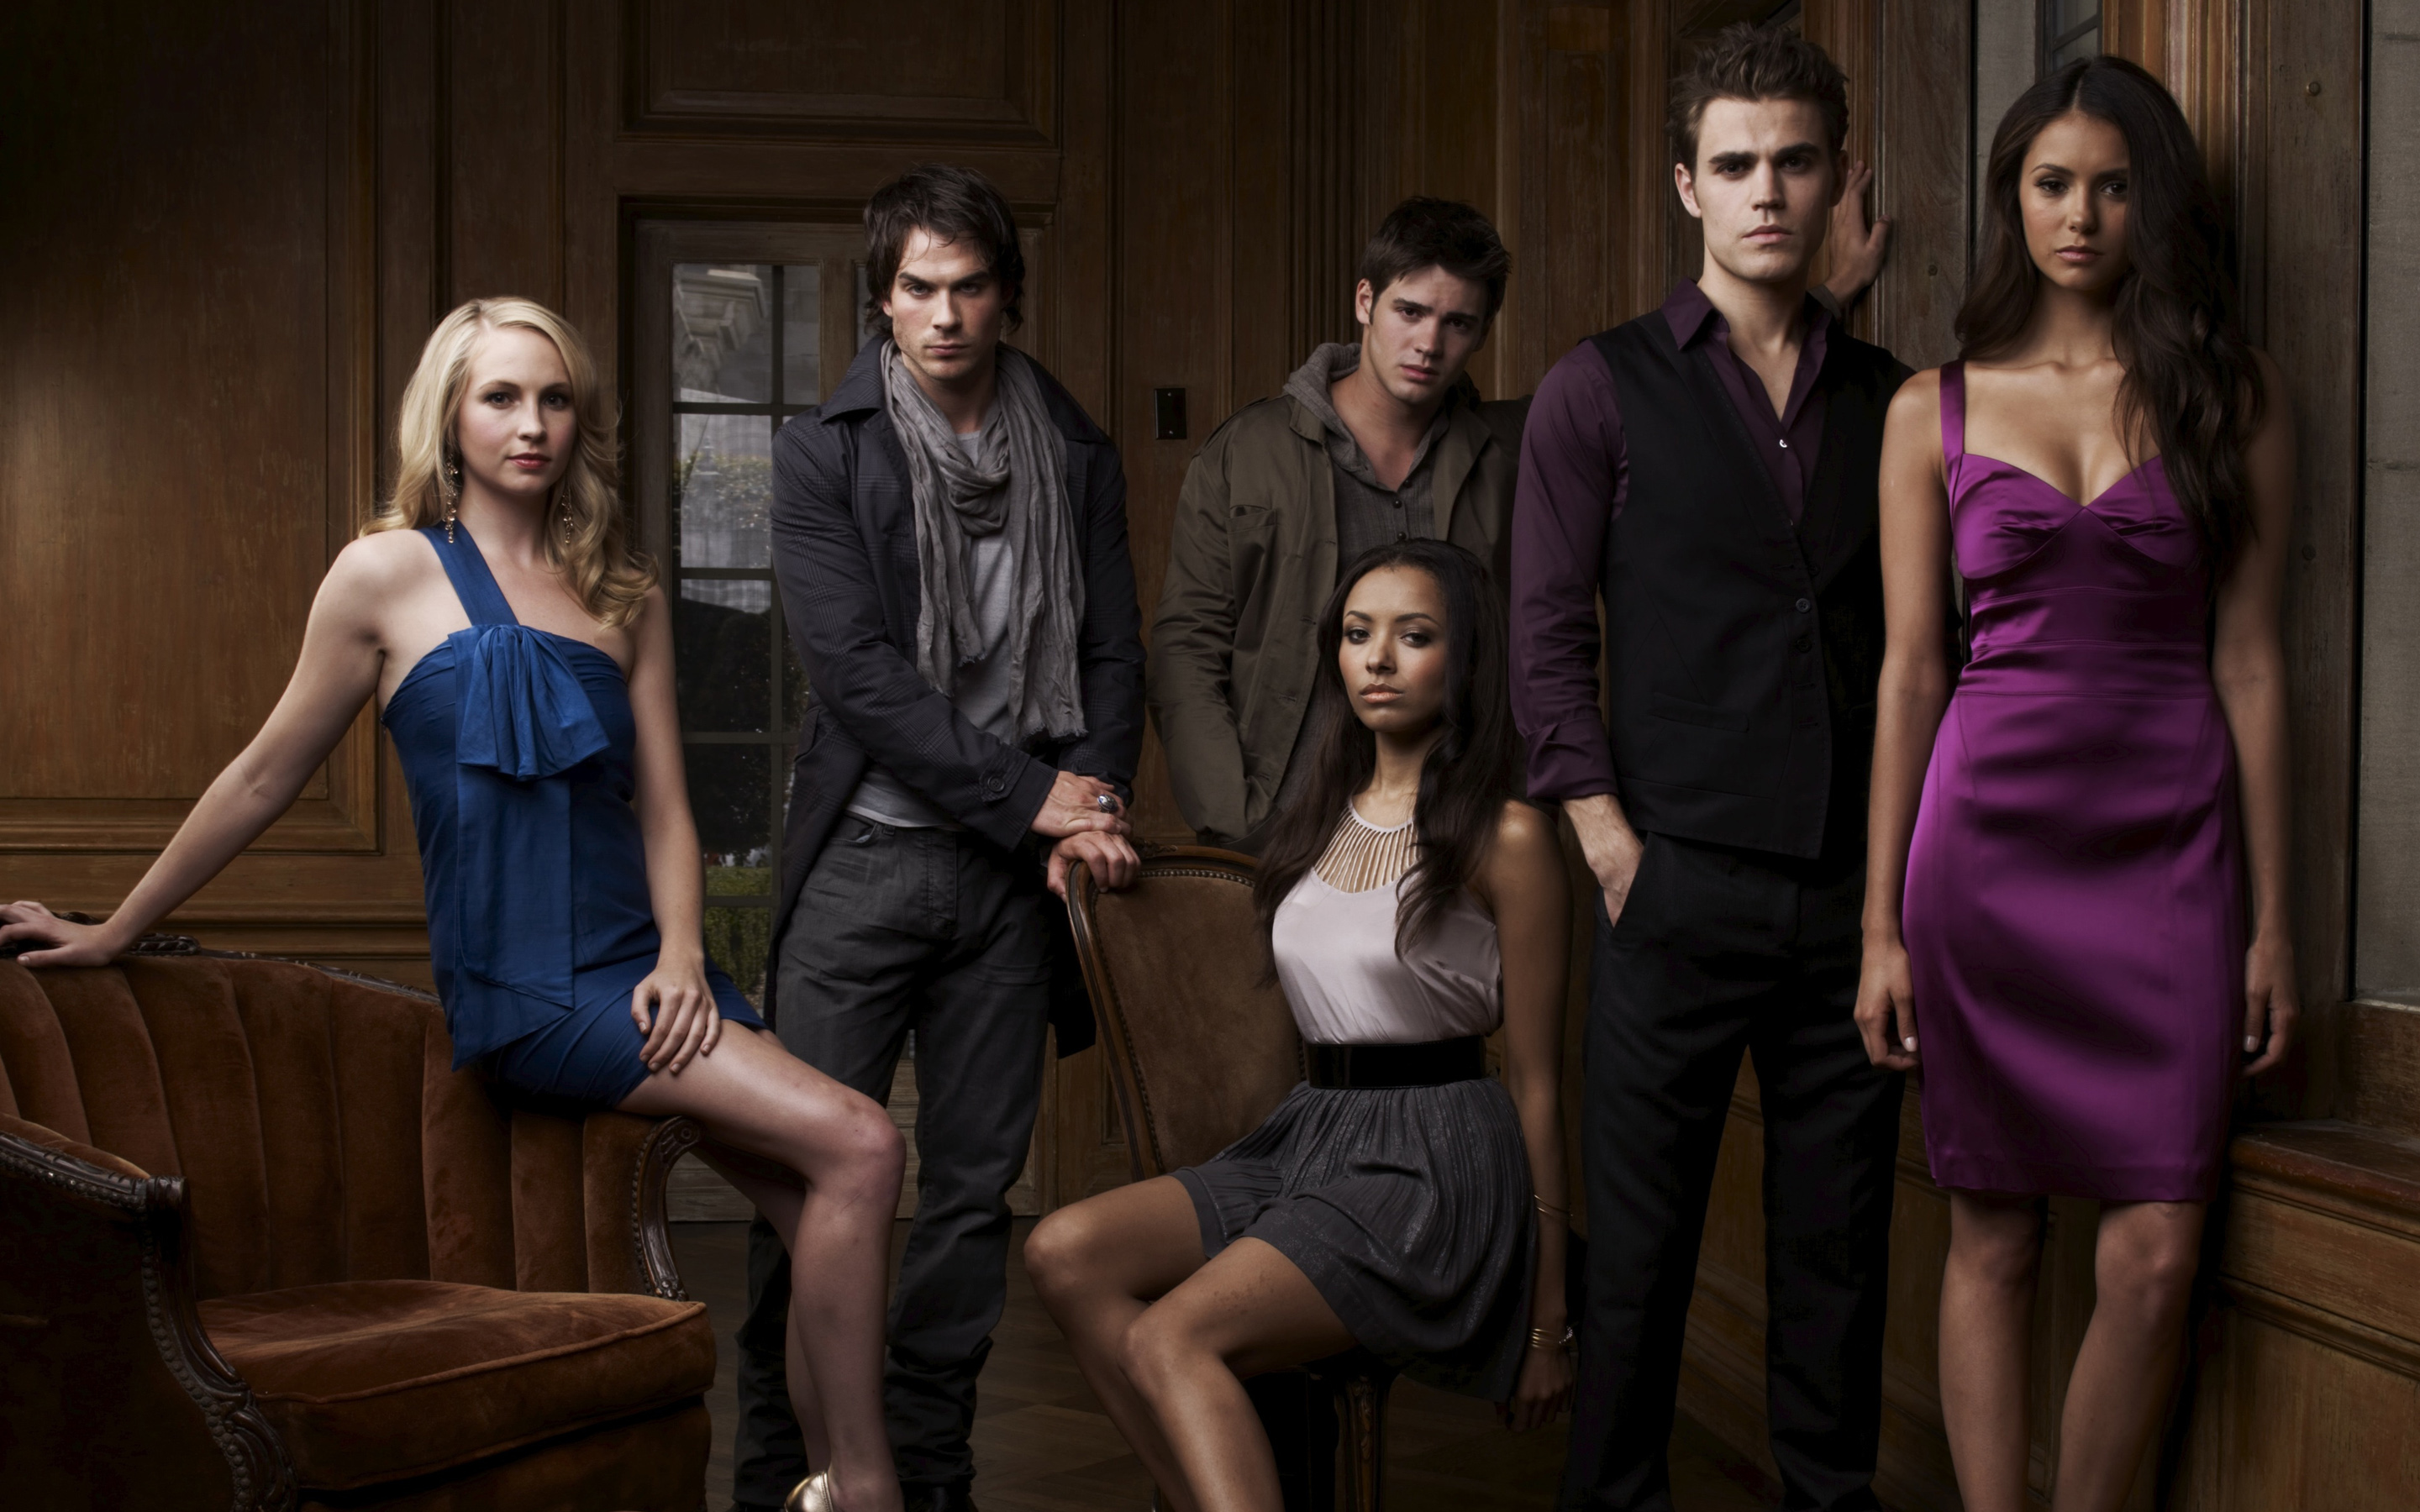 Wallpaper The Vampire Diaries: The Vampire Diaries HD Wallpapers For Desktop Download